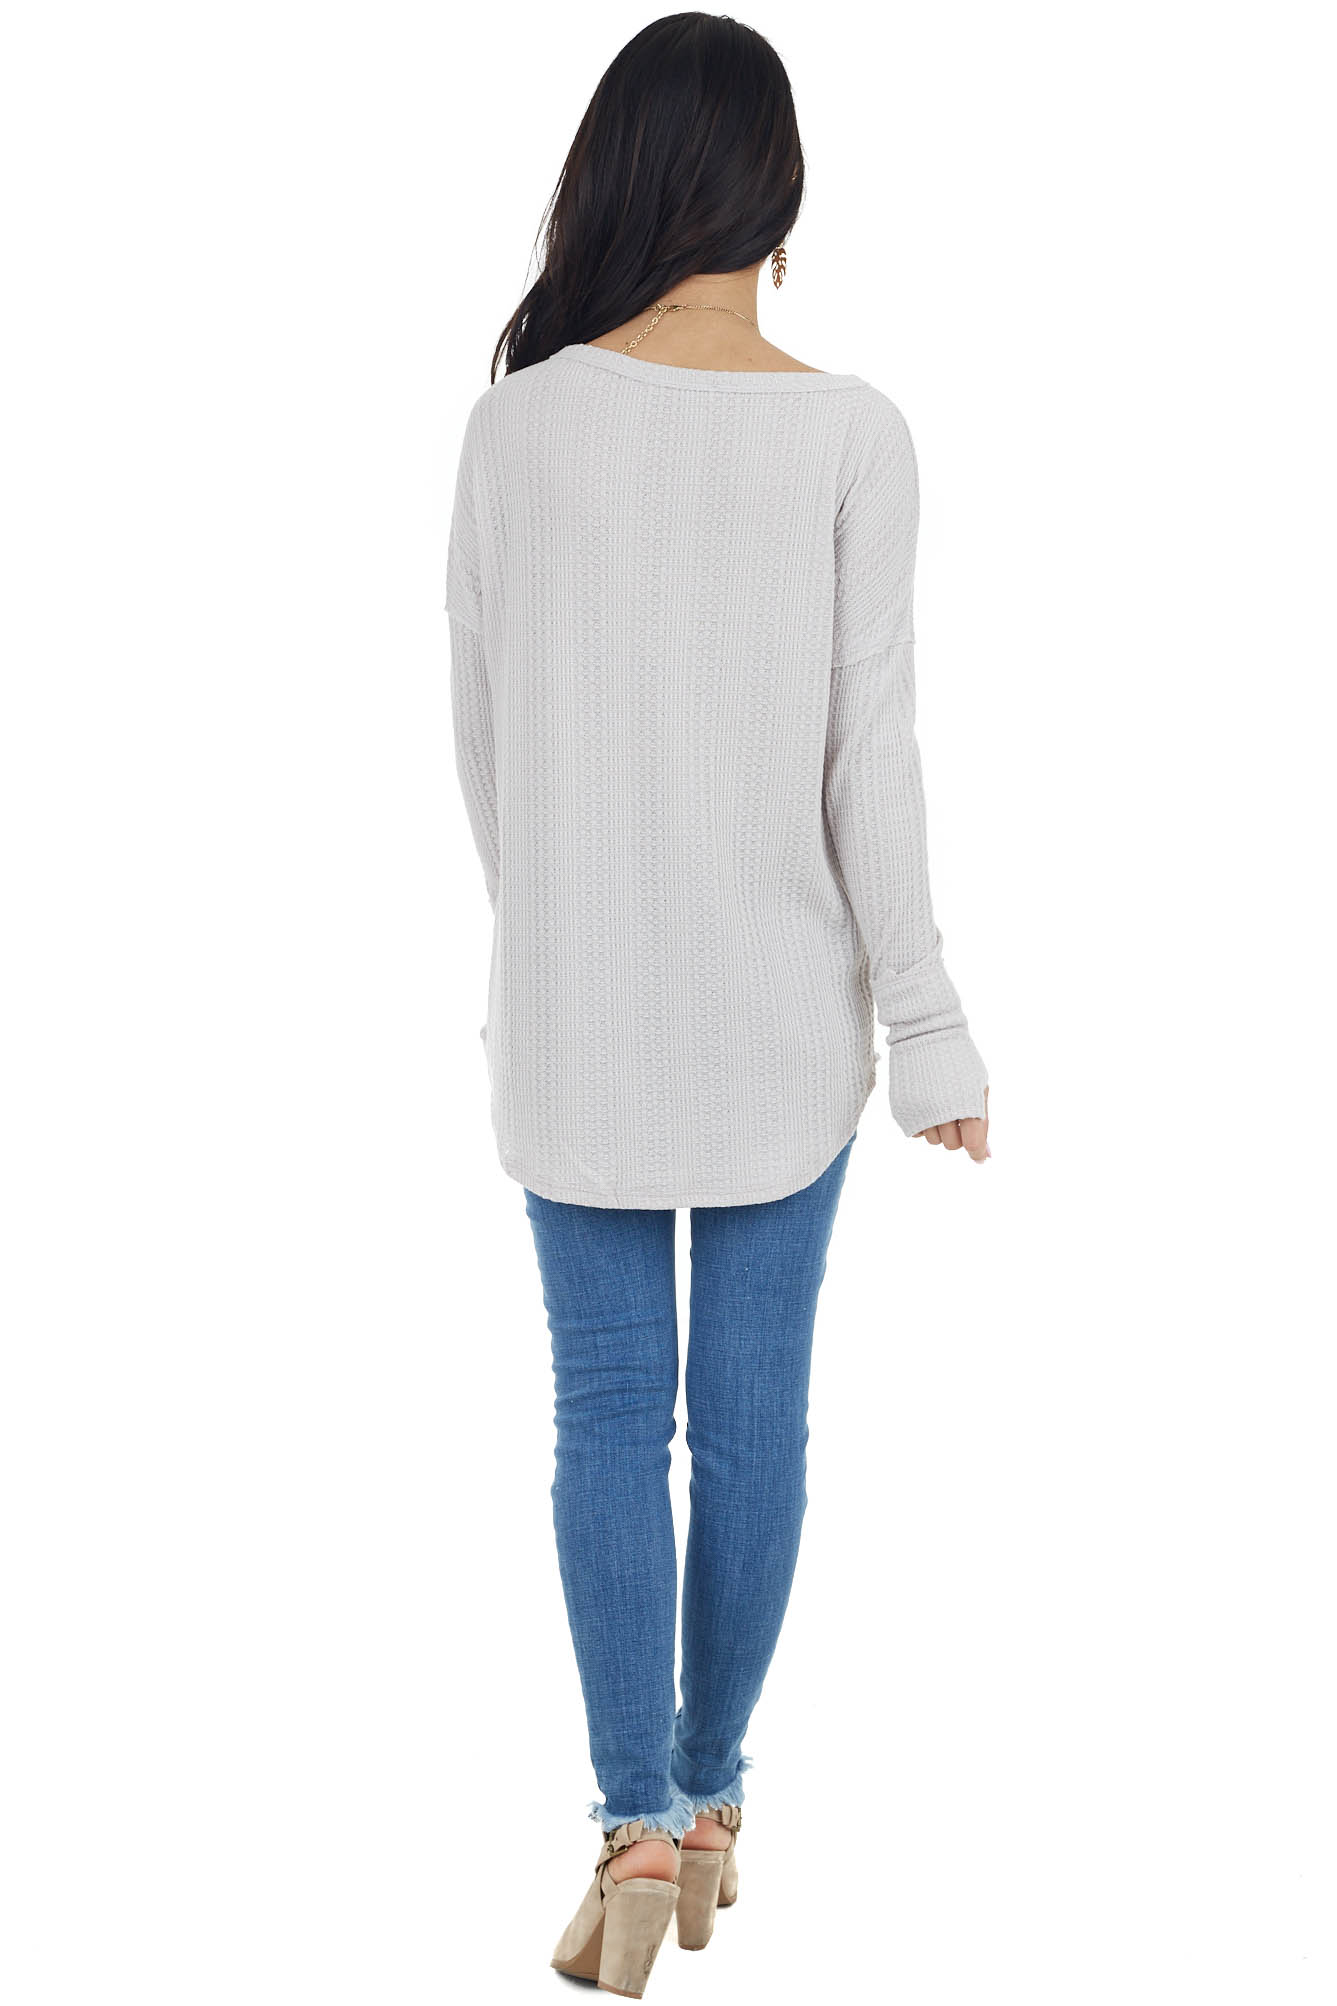 Lunar Grey Long Cuff Waffle Knit Top with Raw Edge Details